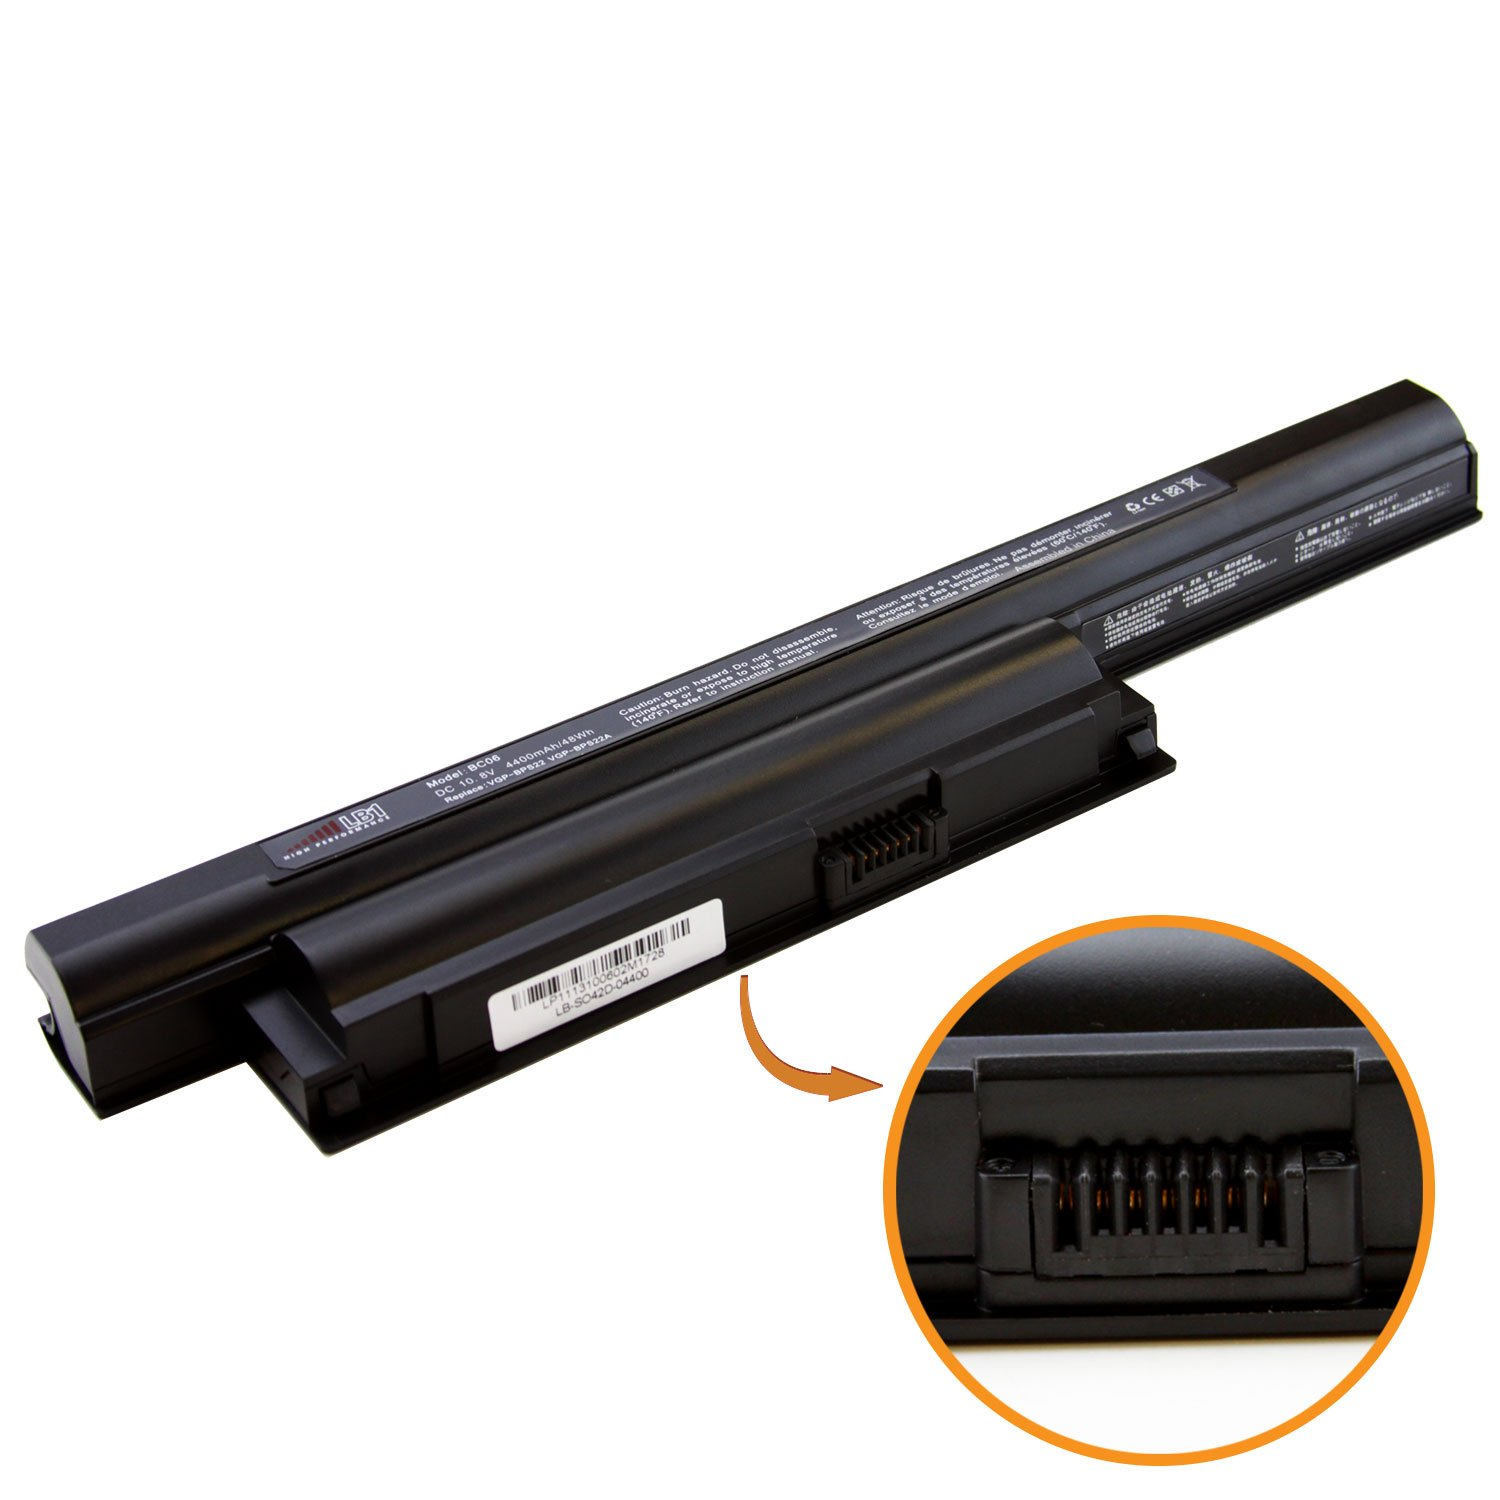 Amazon.com: LB1 High Performance New Laptop battery for Sony VGP-BPS22 for Notebook Sony VGP-BPS22 for Computer Sony VGP-BPS22: Computers & Accessories